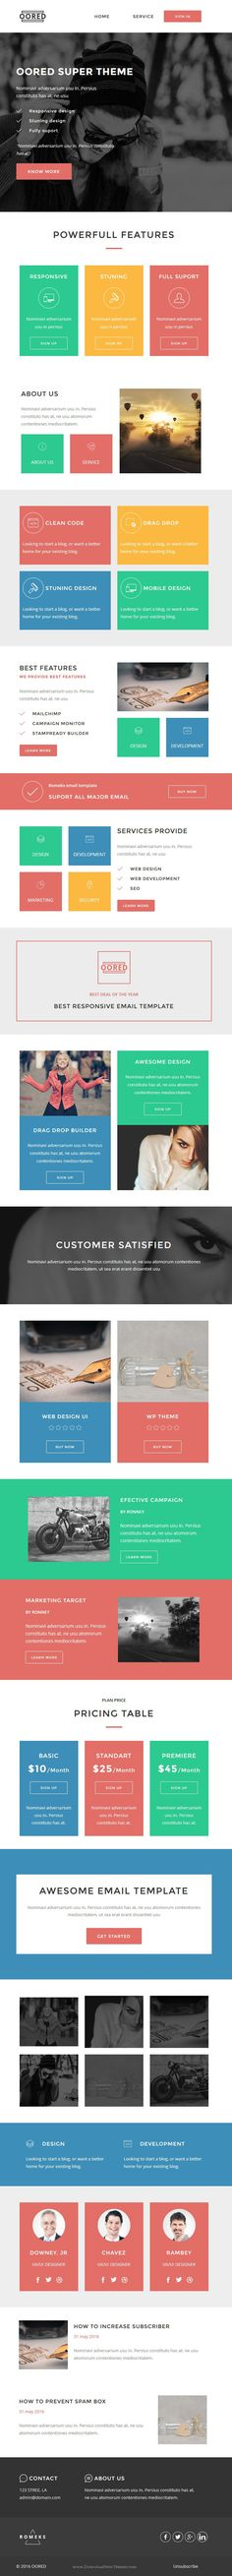 Stork - Multipurpose Responsive Email Template + Stampready - business email template